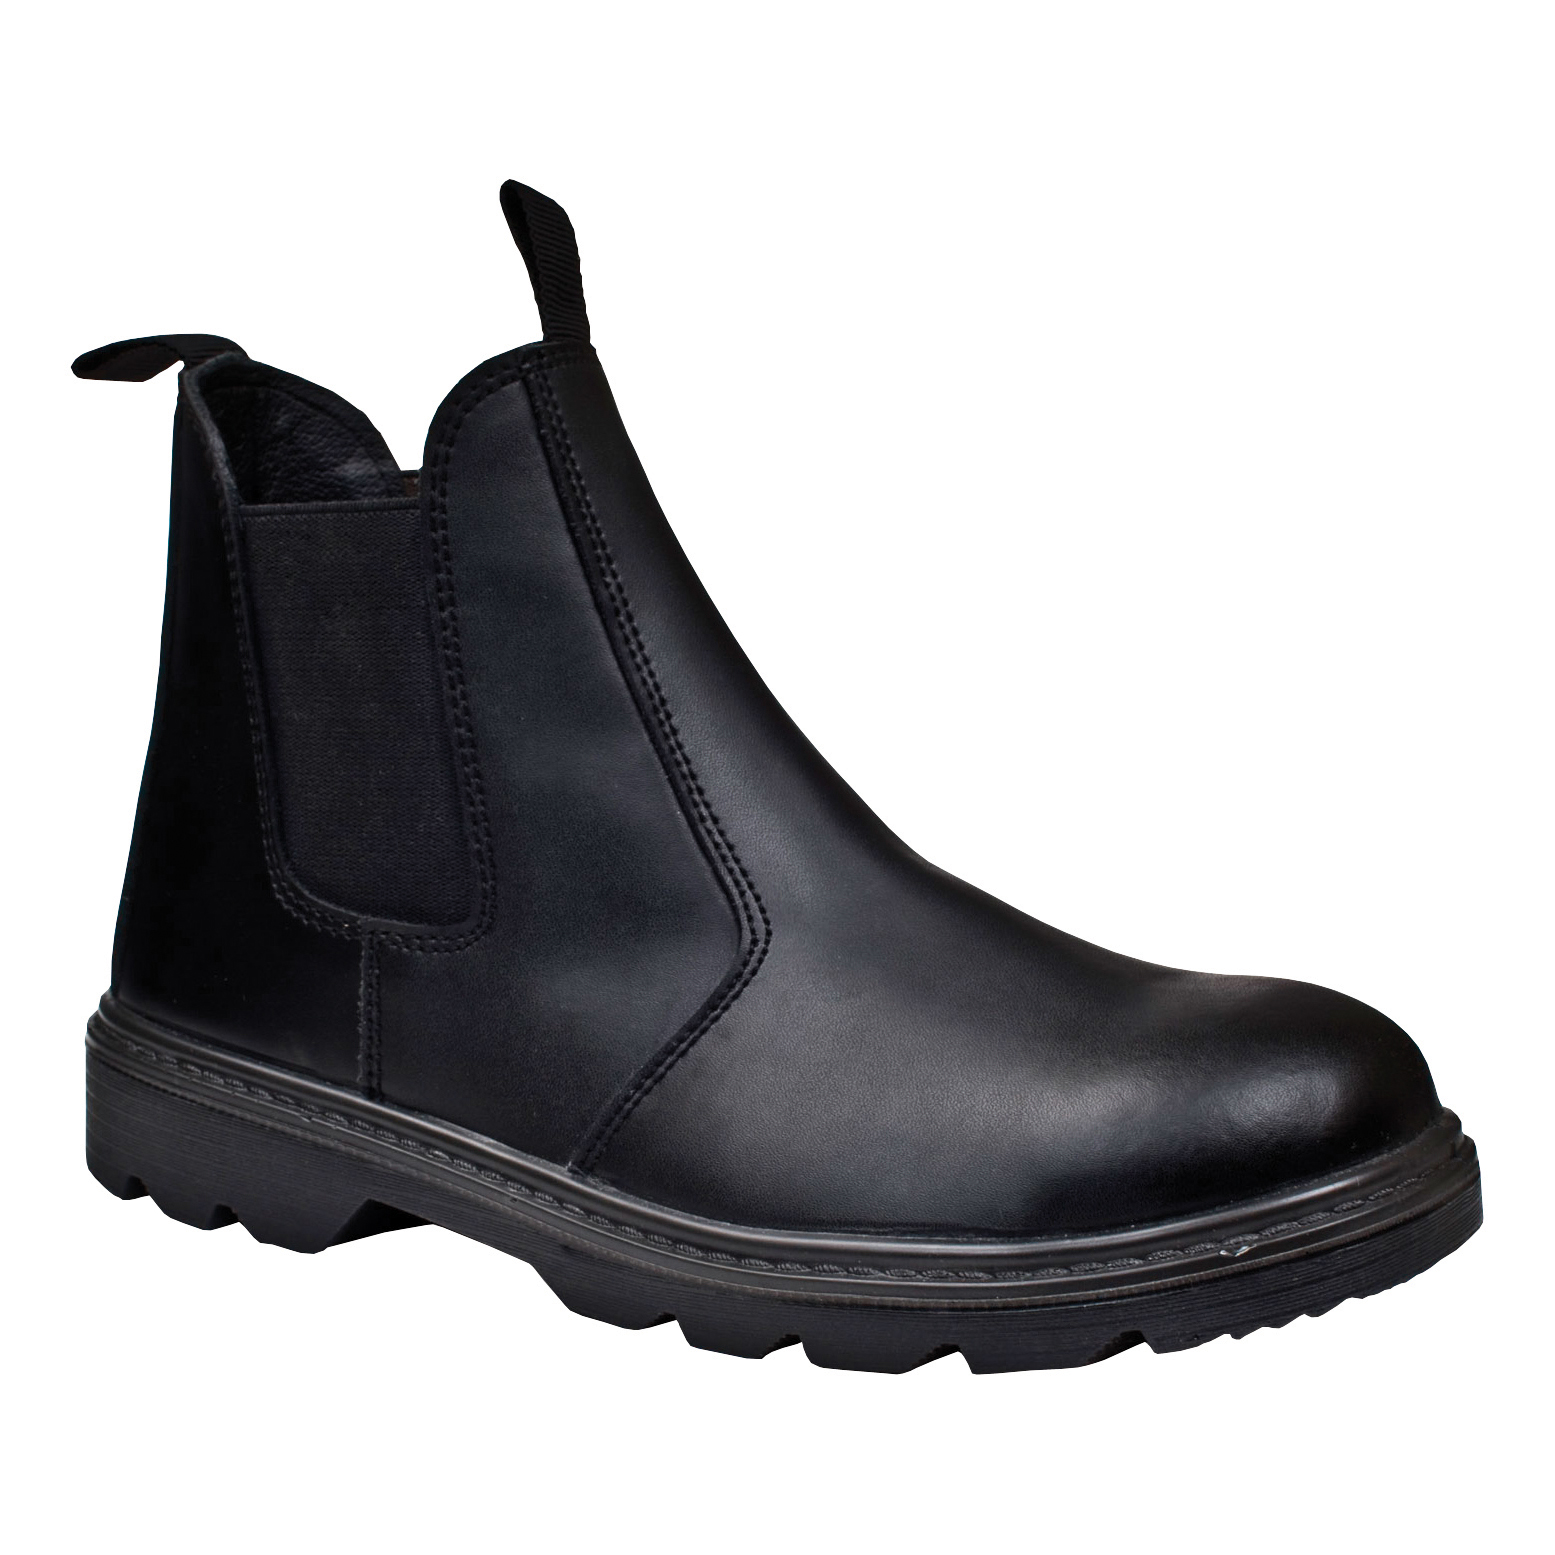 Click Footwear Dealer Boot PU/Leather Steel Toecap Size 9 Black Ref CF16BL09 Approx 3 Day Leadtime